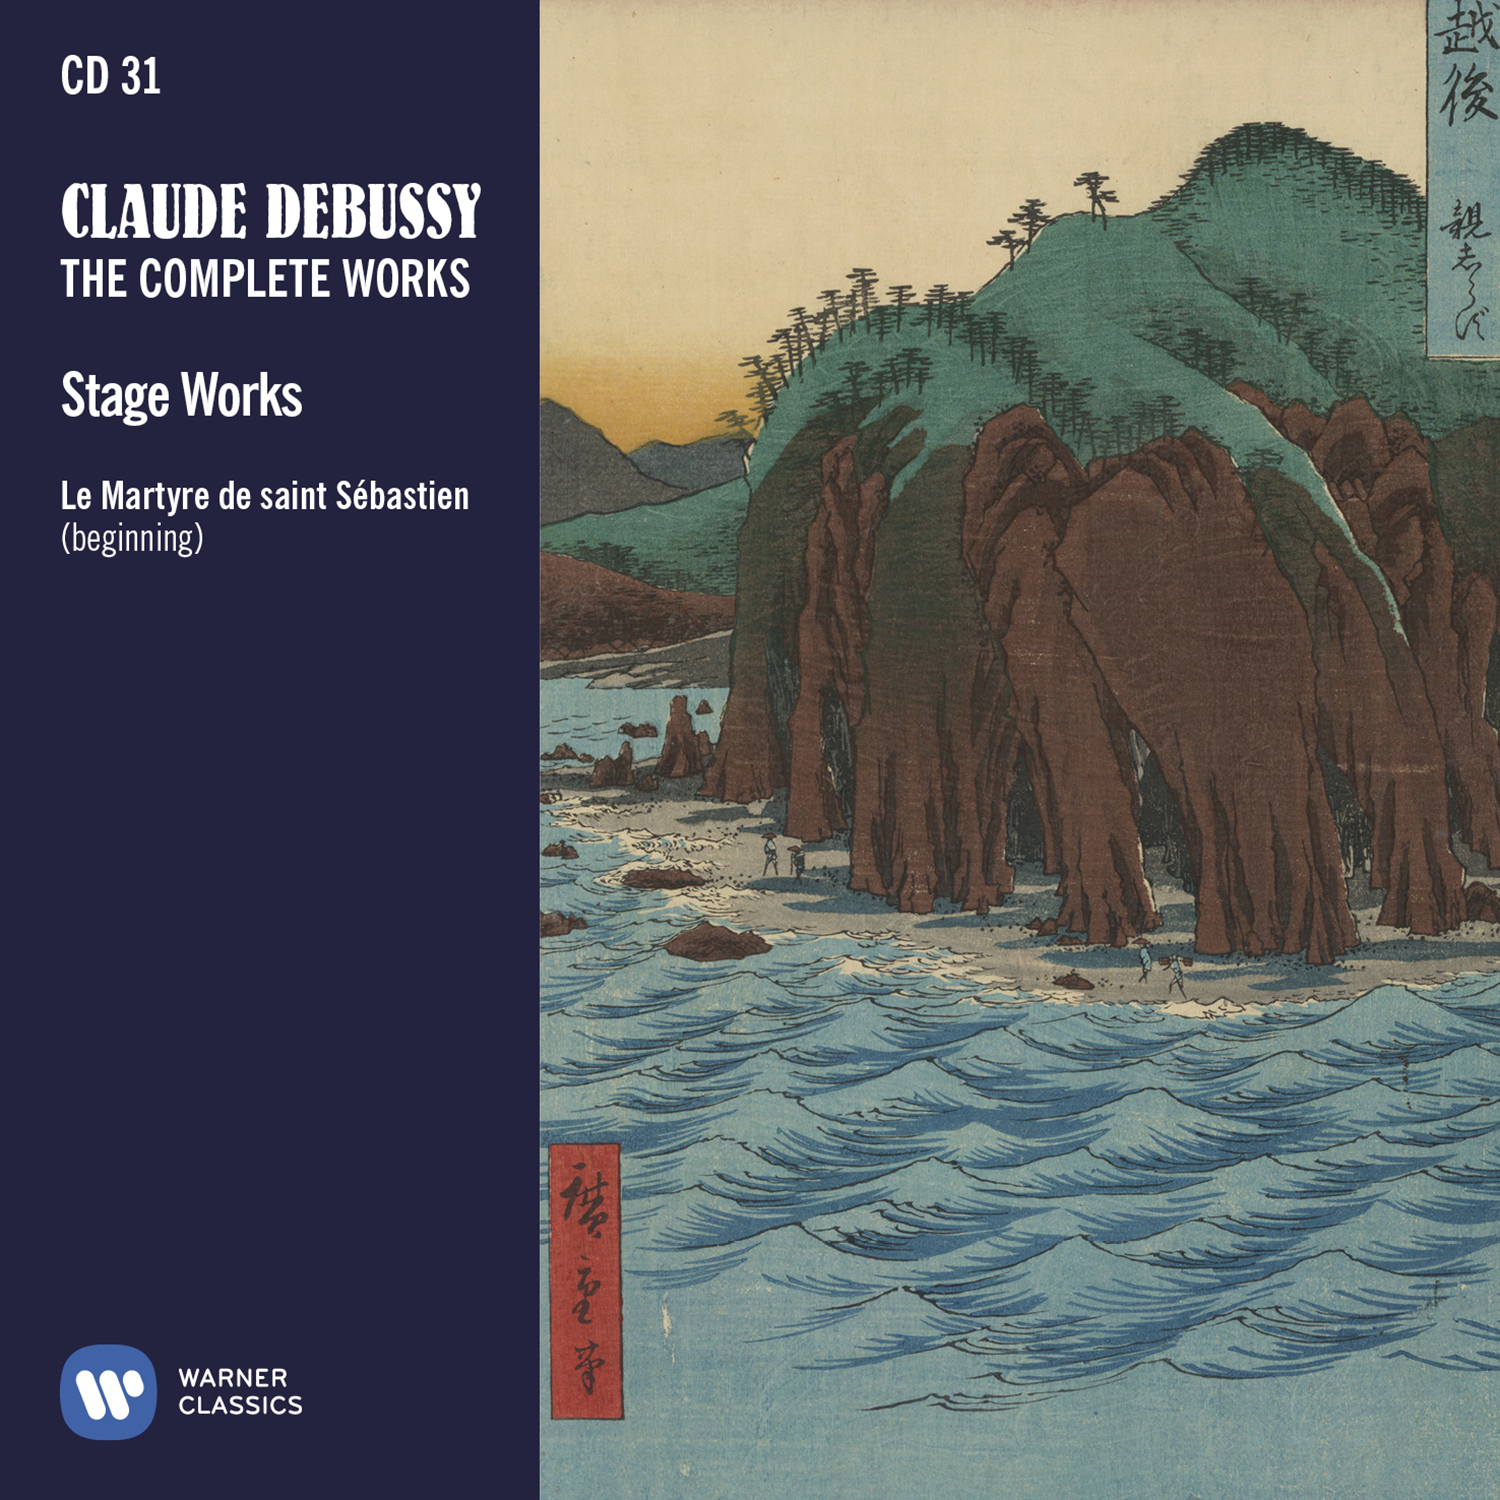 Debussy The complete works - Cover wallet CD31.jpg